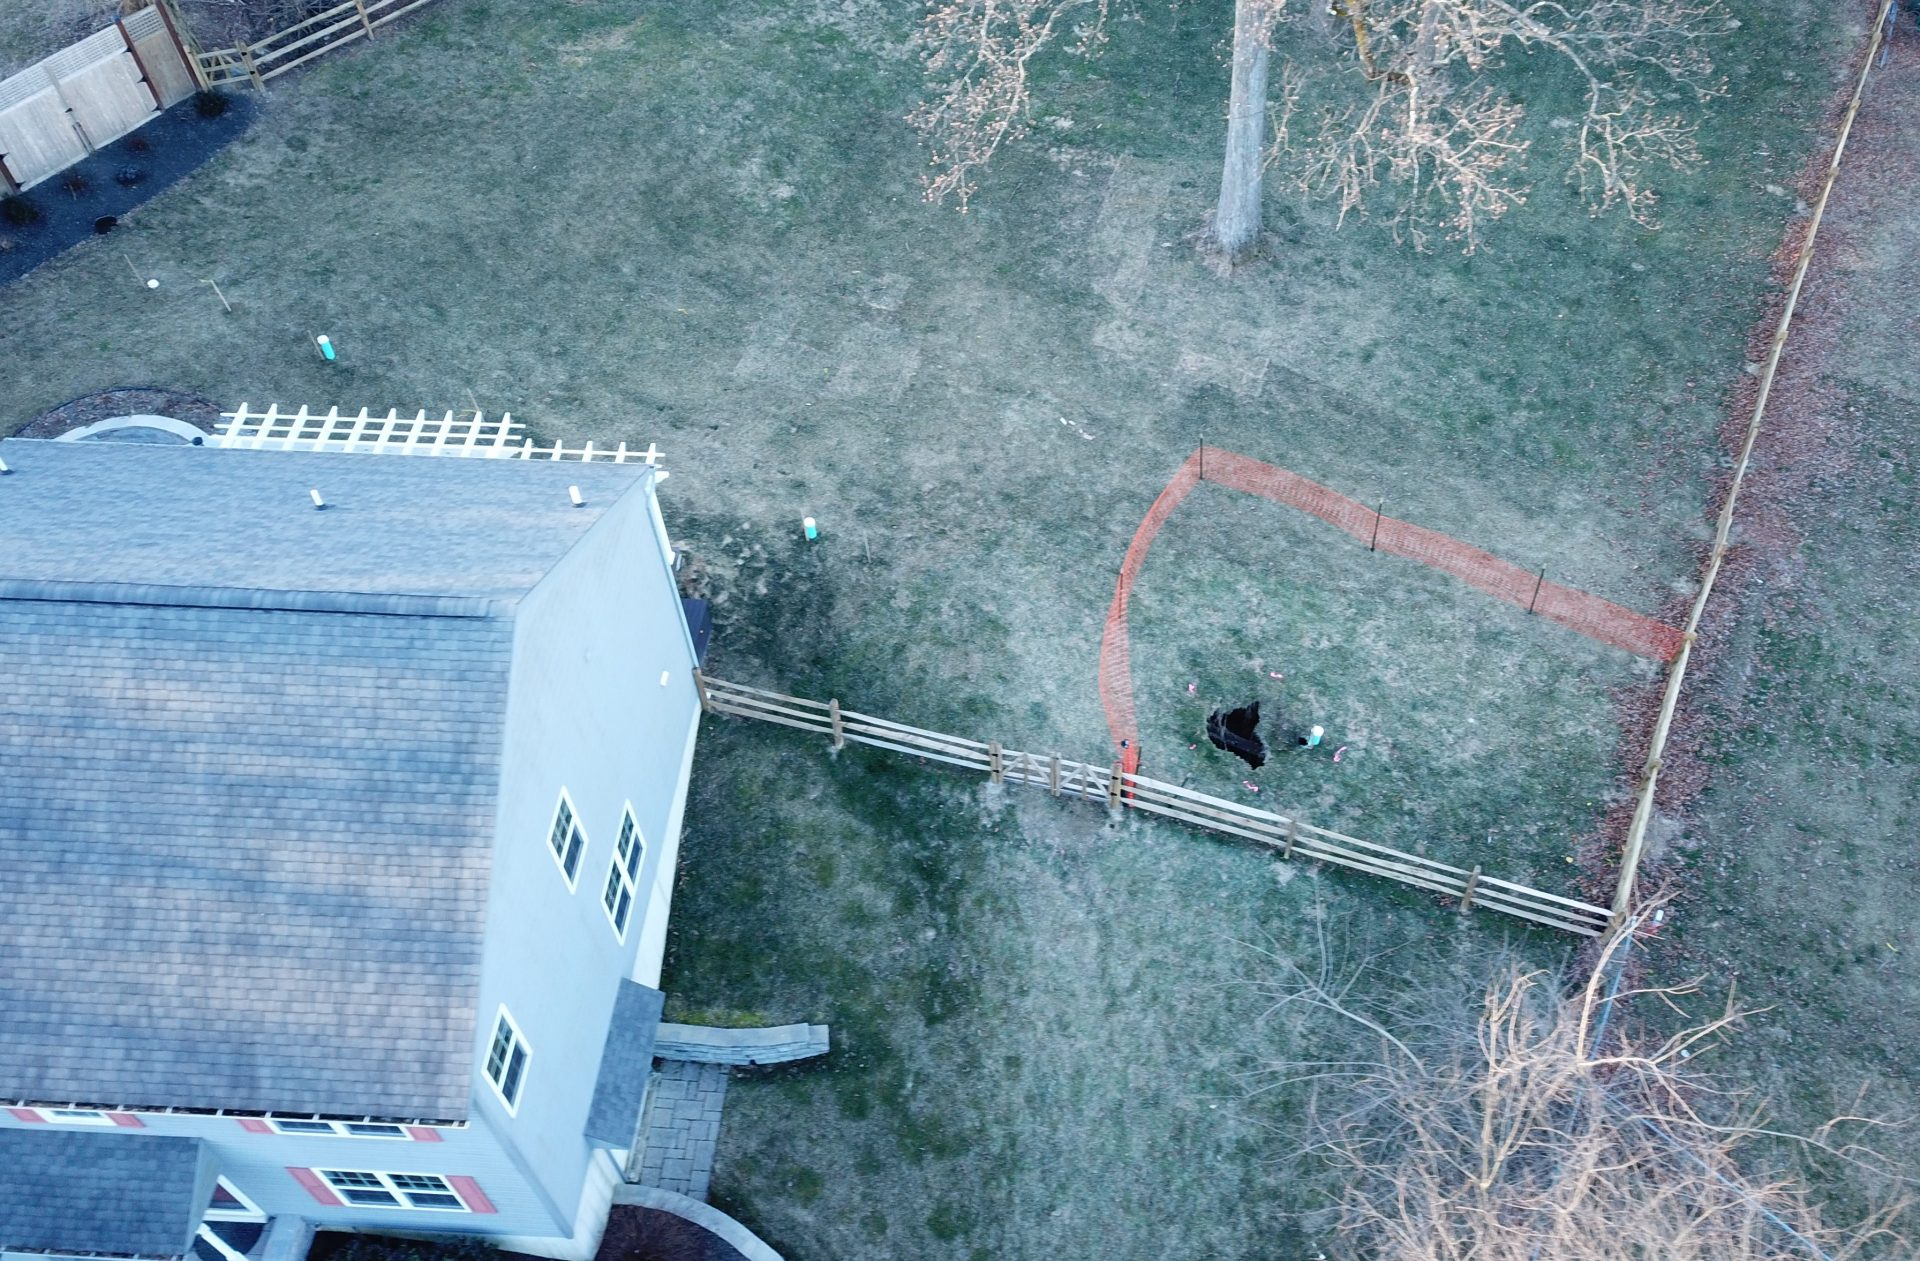 A sinkhole that opened up in January was surrounded by orange plastic fencing outside a suburban home at Lisa Drive in West Whiteland Township, Chester County.